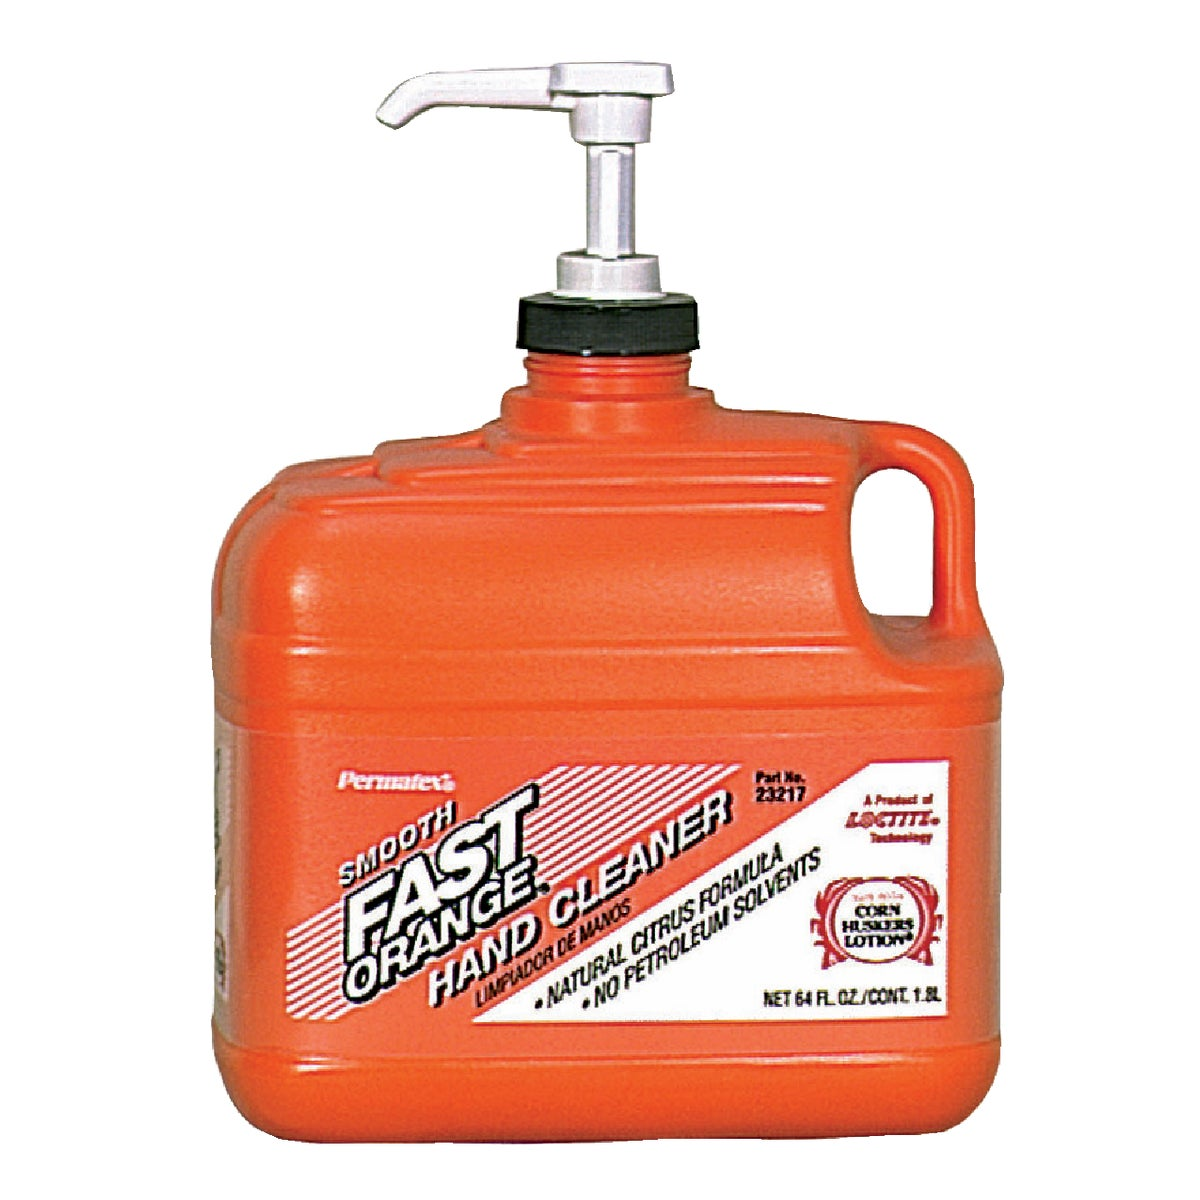 1/2GAL SM HAND CLEANER - 23217 by Itw Global Brands